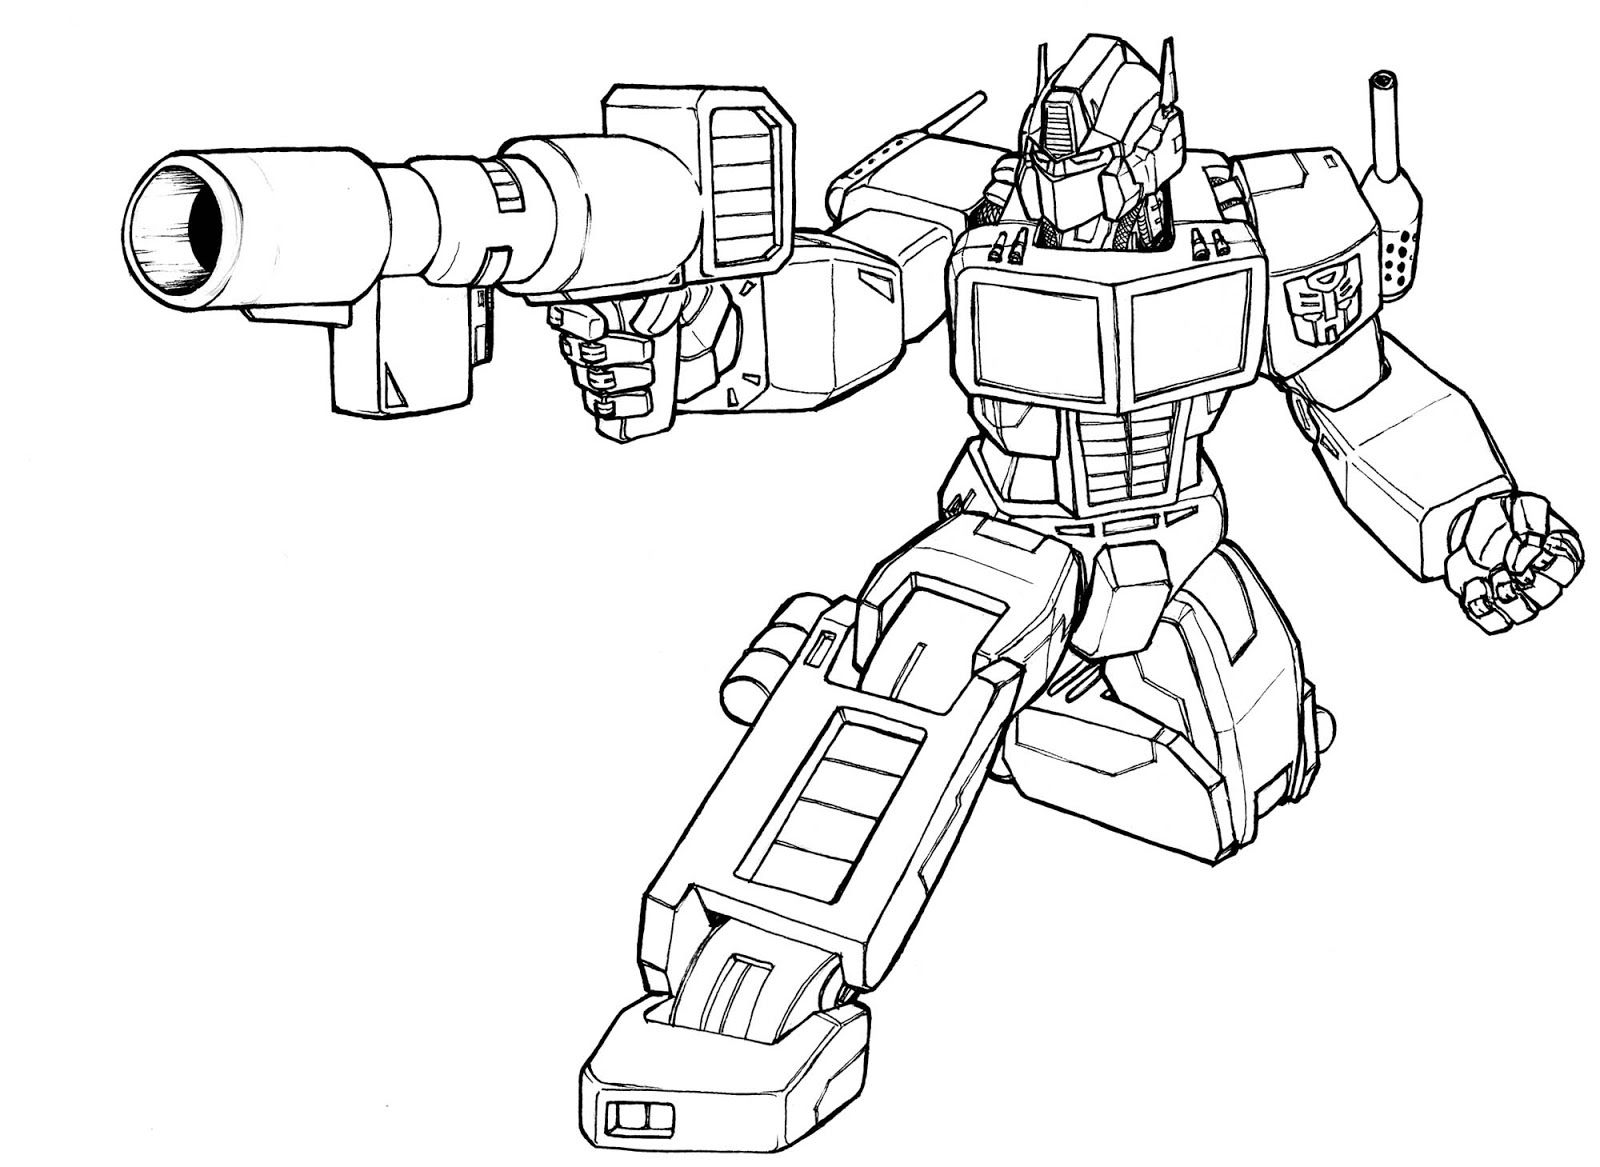 Optimus Prime Coloring Page Luxury Printable Transformer Coloring Pages Of 50 Lovely Transformers Coloring Pages Online Coloring Pages Coloring Pages For Kids